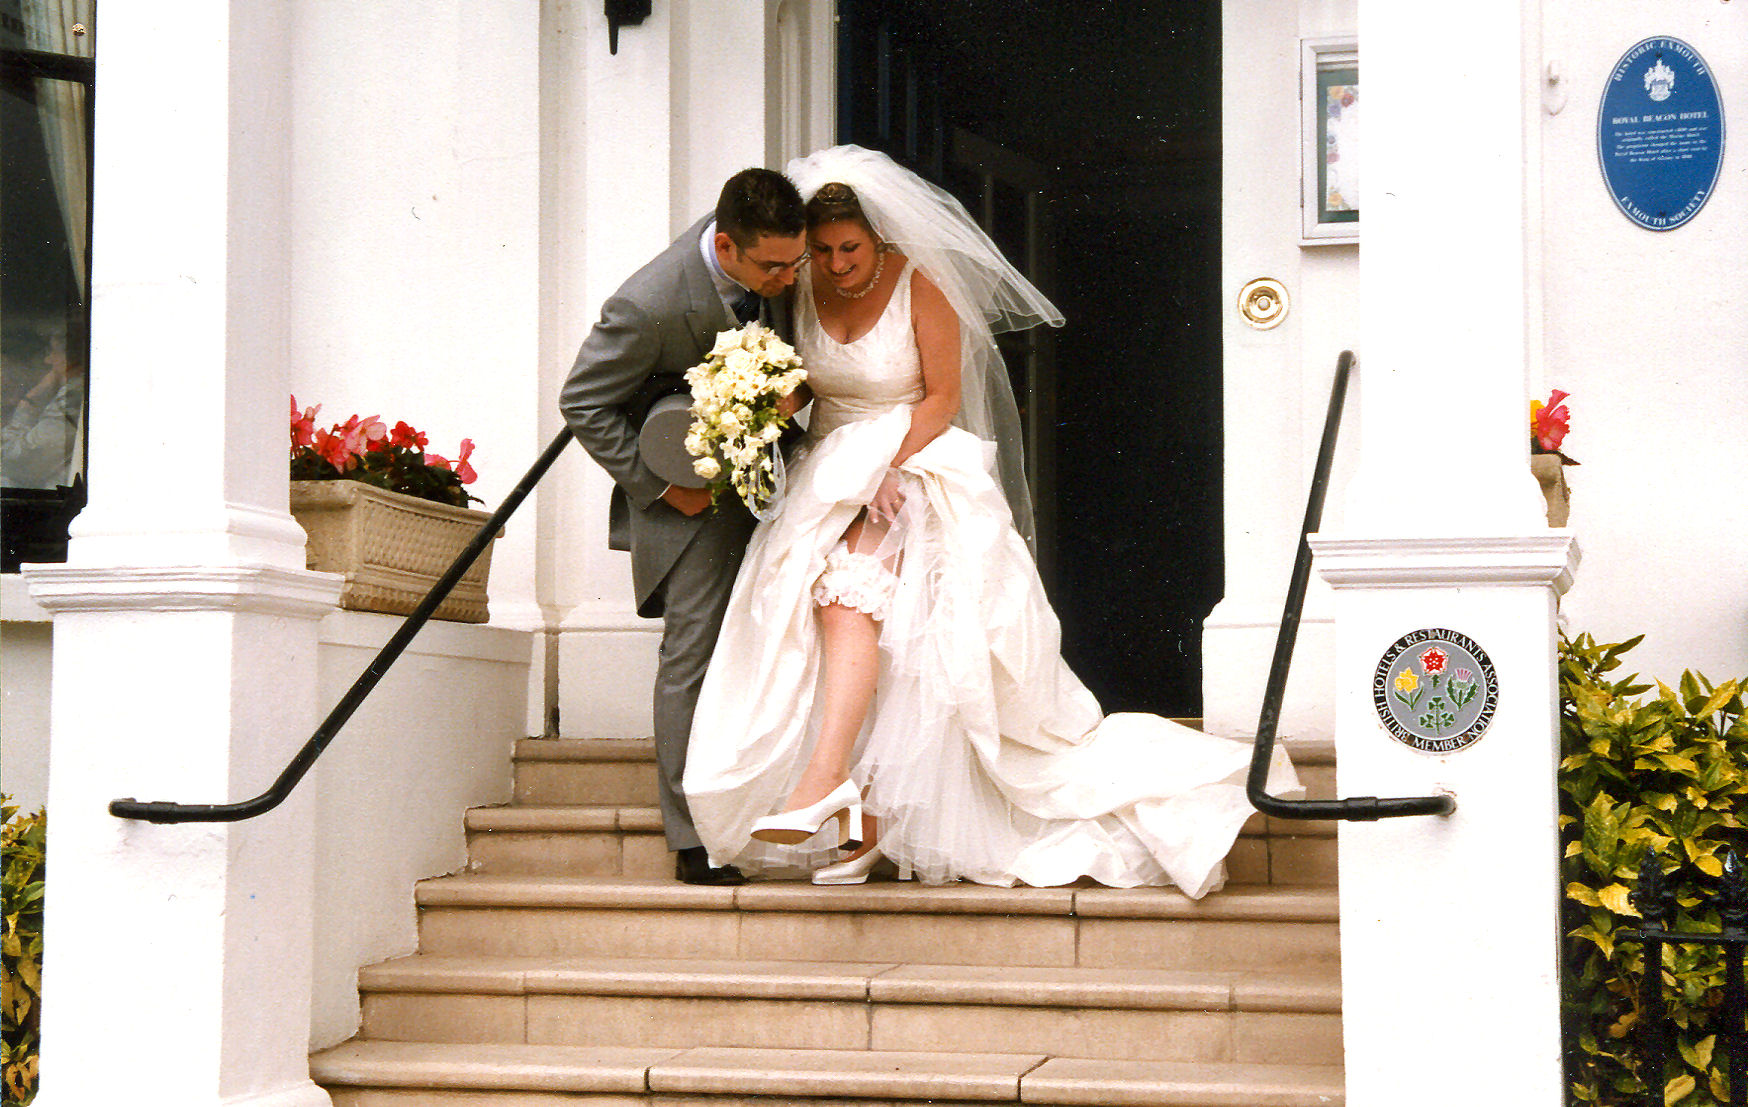 Paul and Kate at their 2001 wedding reception at The Royal Beacon in Exmouth.